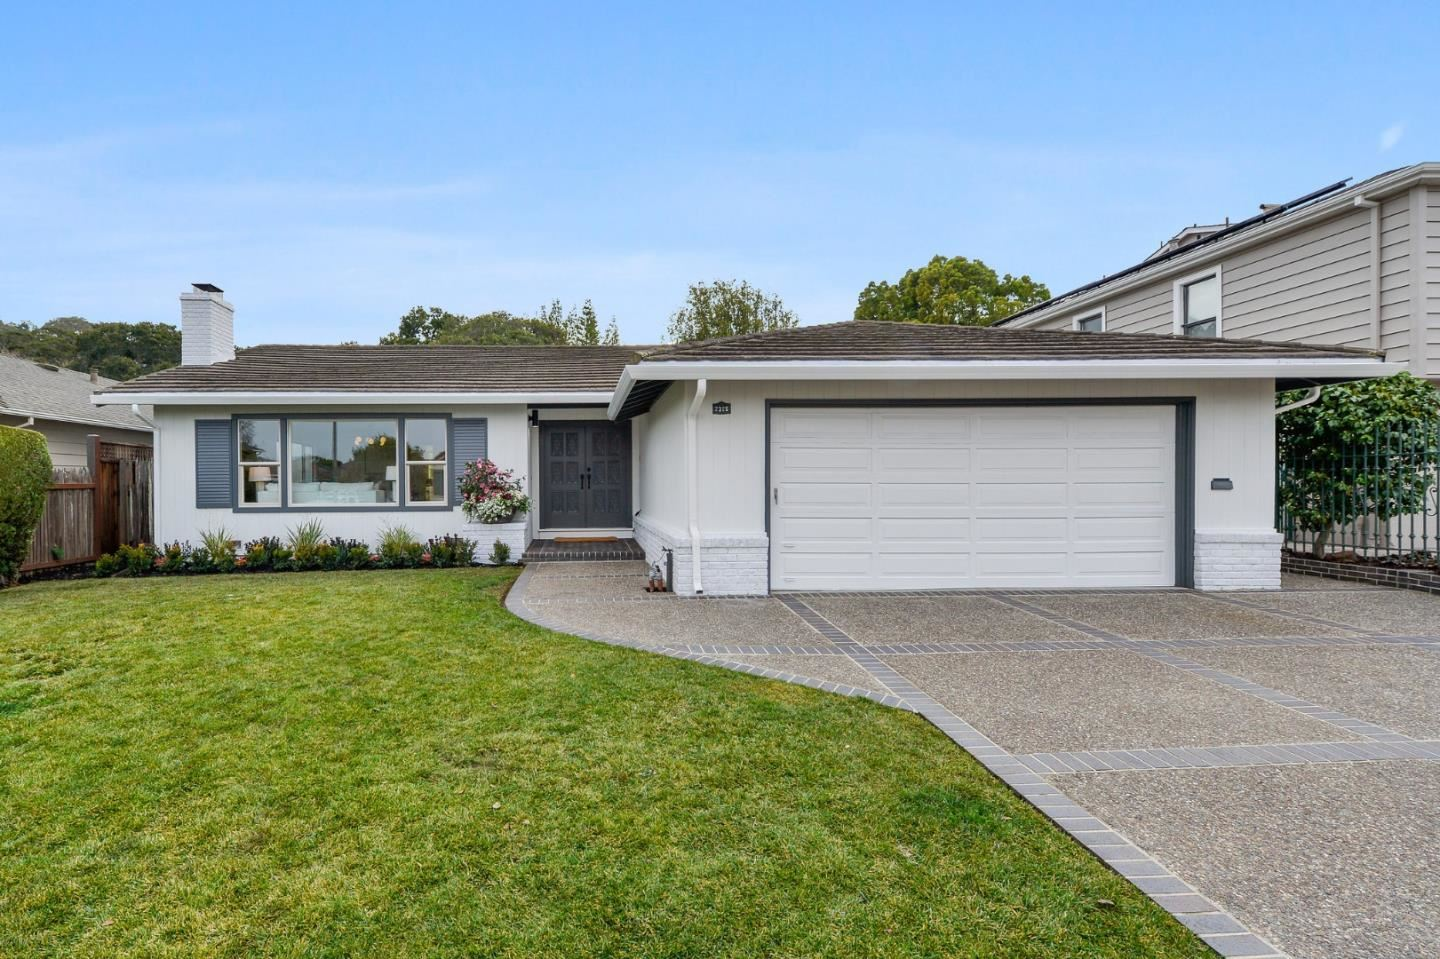 Photo for 2325 Ray DR, BURLINGAME, CA 94010 (MLS # ML81825703)